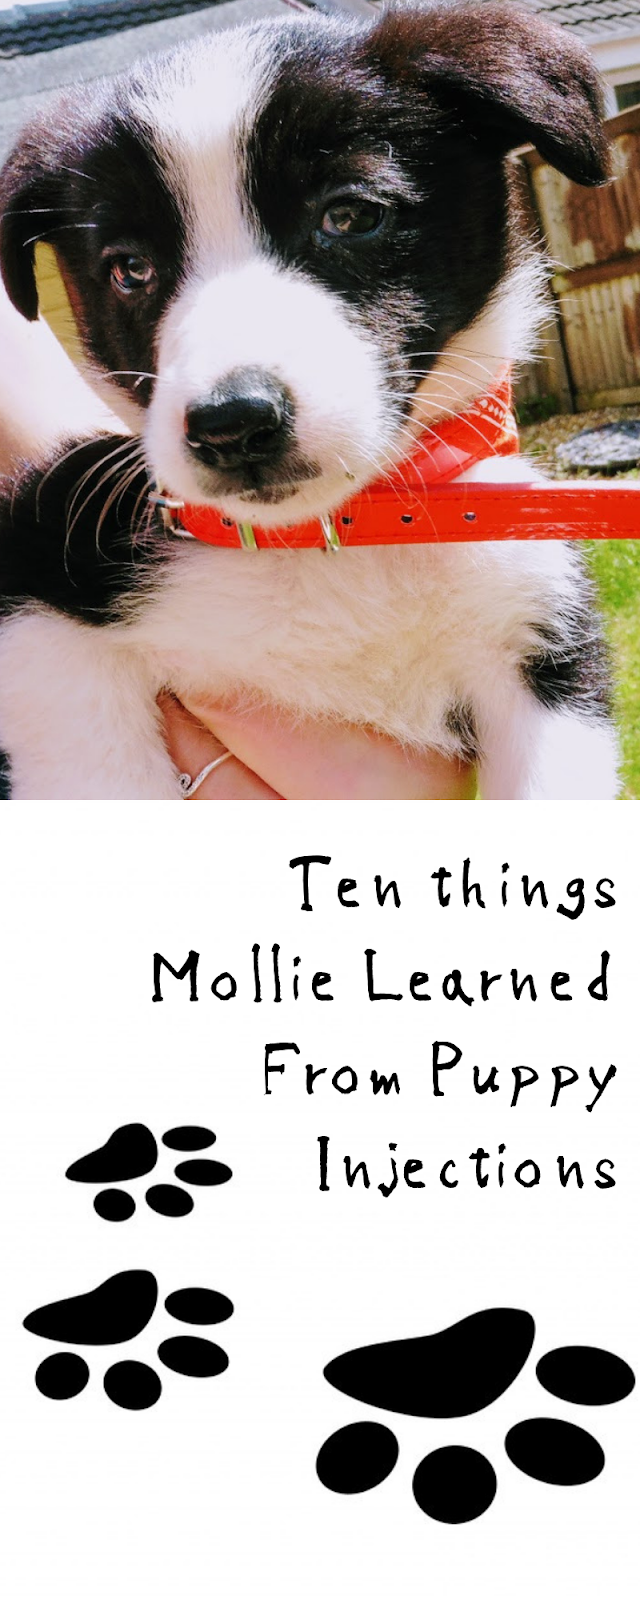 Ten things Mollie Learned From Puppy Injections